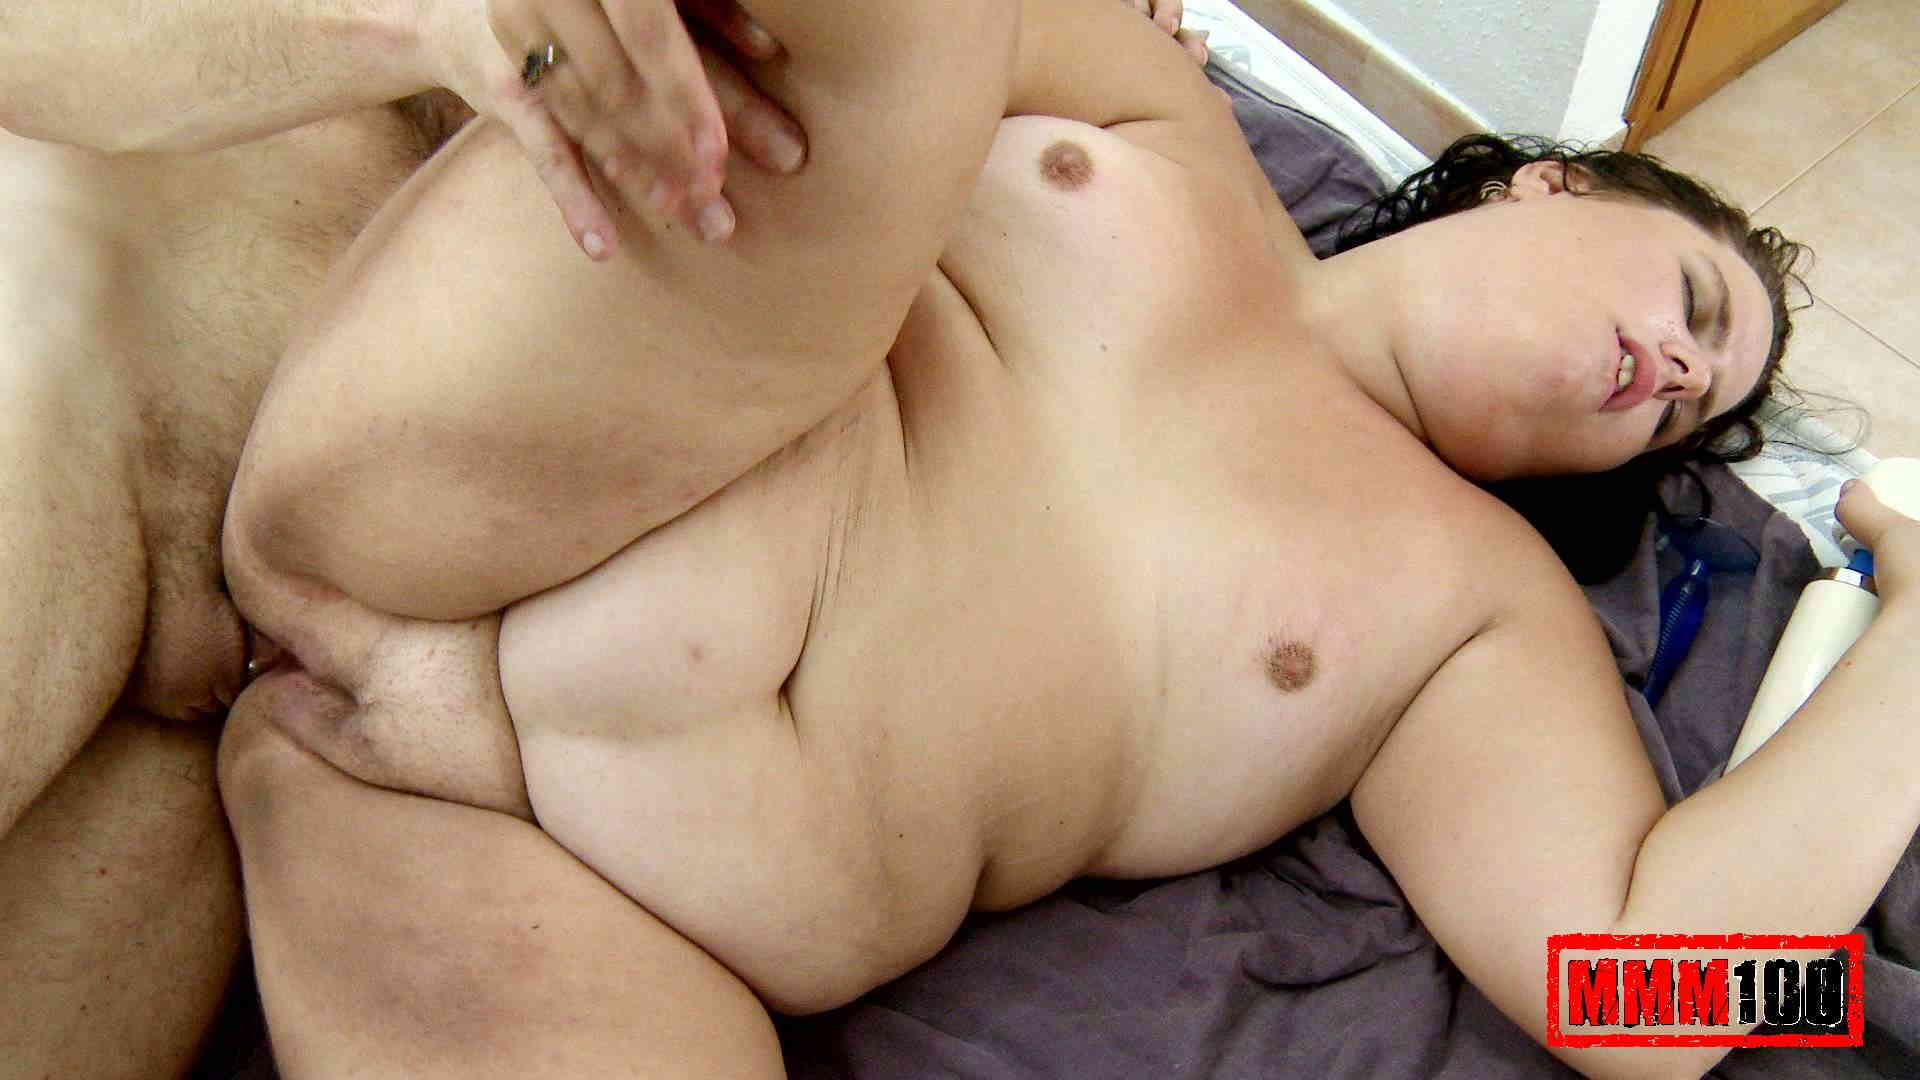 Sexy nude lesbians kissing